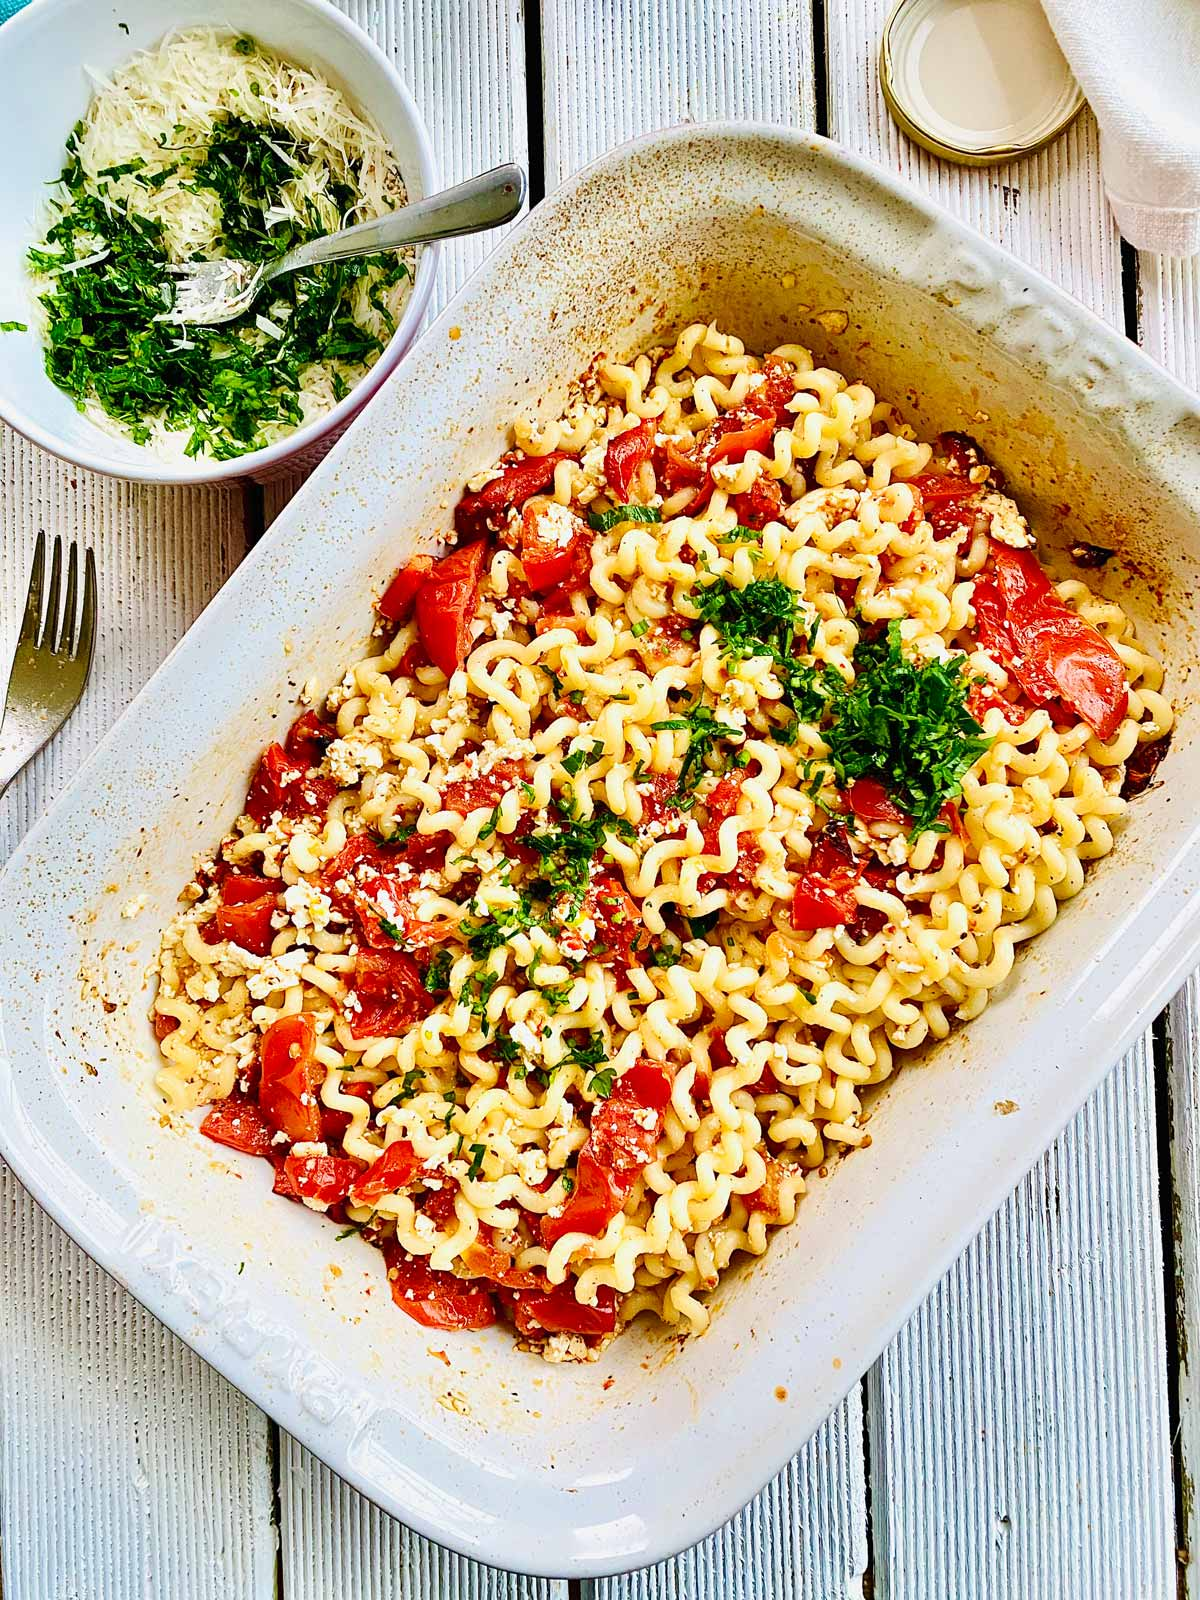 Pasta mixed with roast feta, tomatoes and fresh herbs in an ovenproof dish